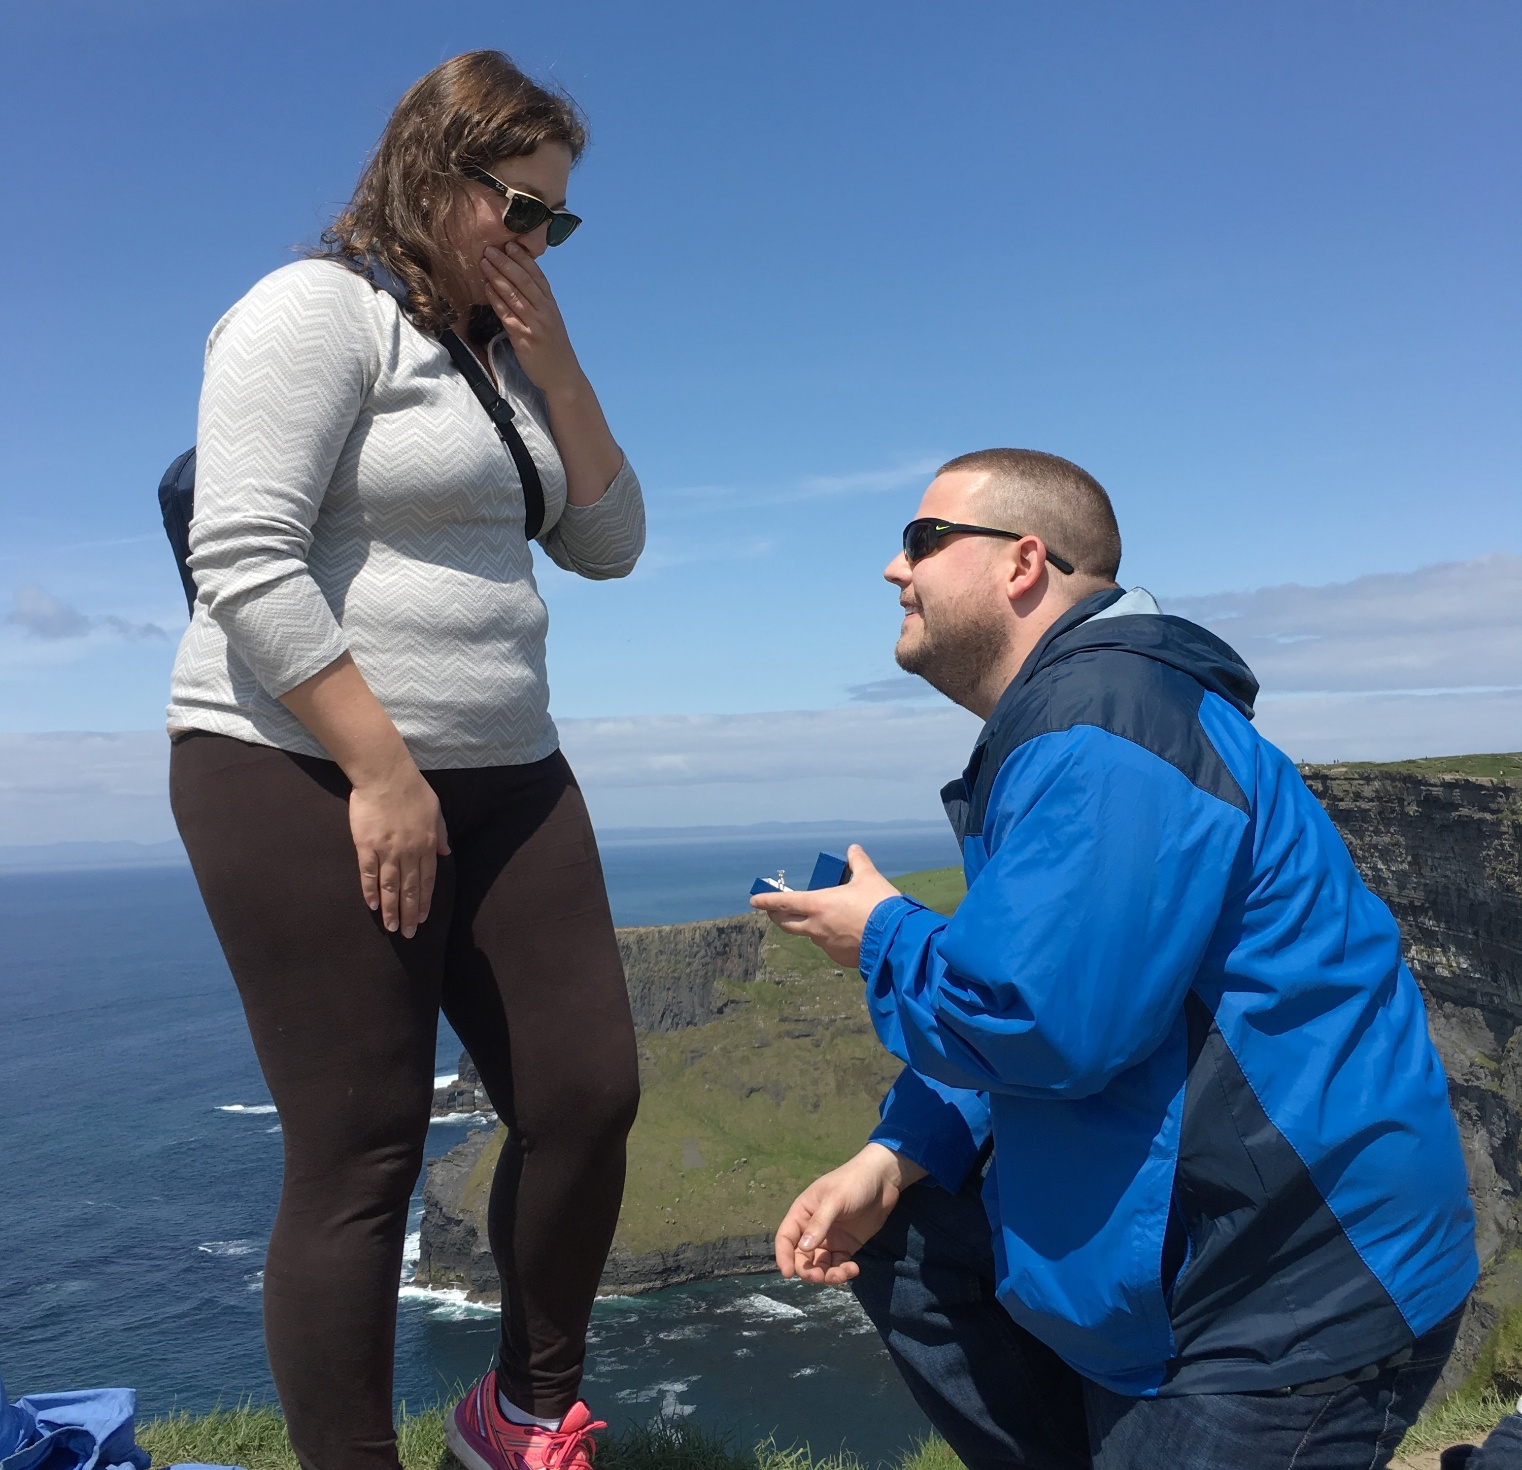 Creative Proposal Idea Pop The Question On A Picturesque Hike